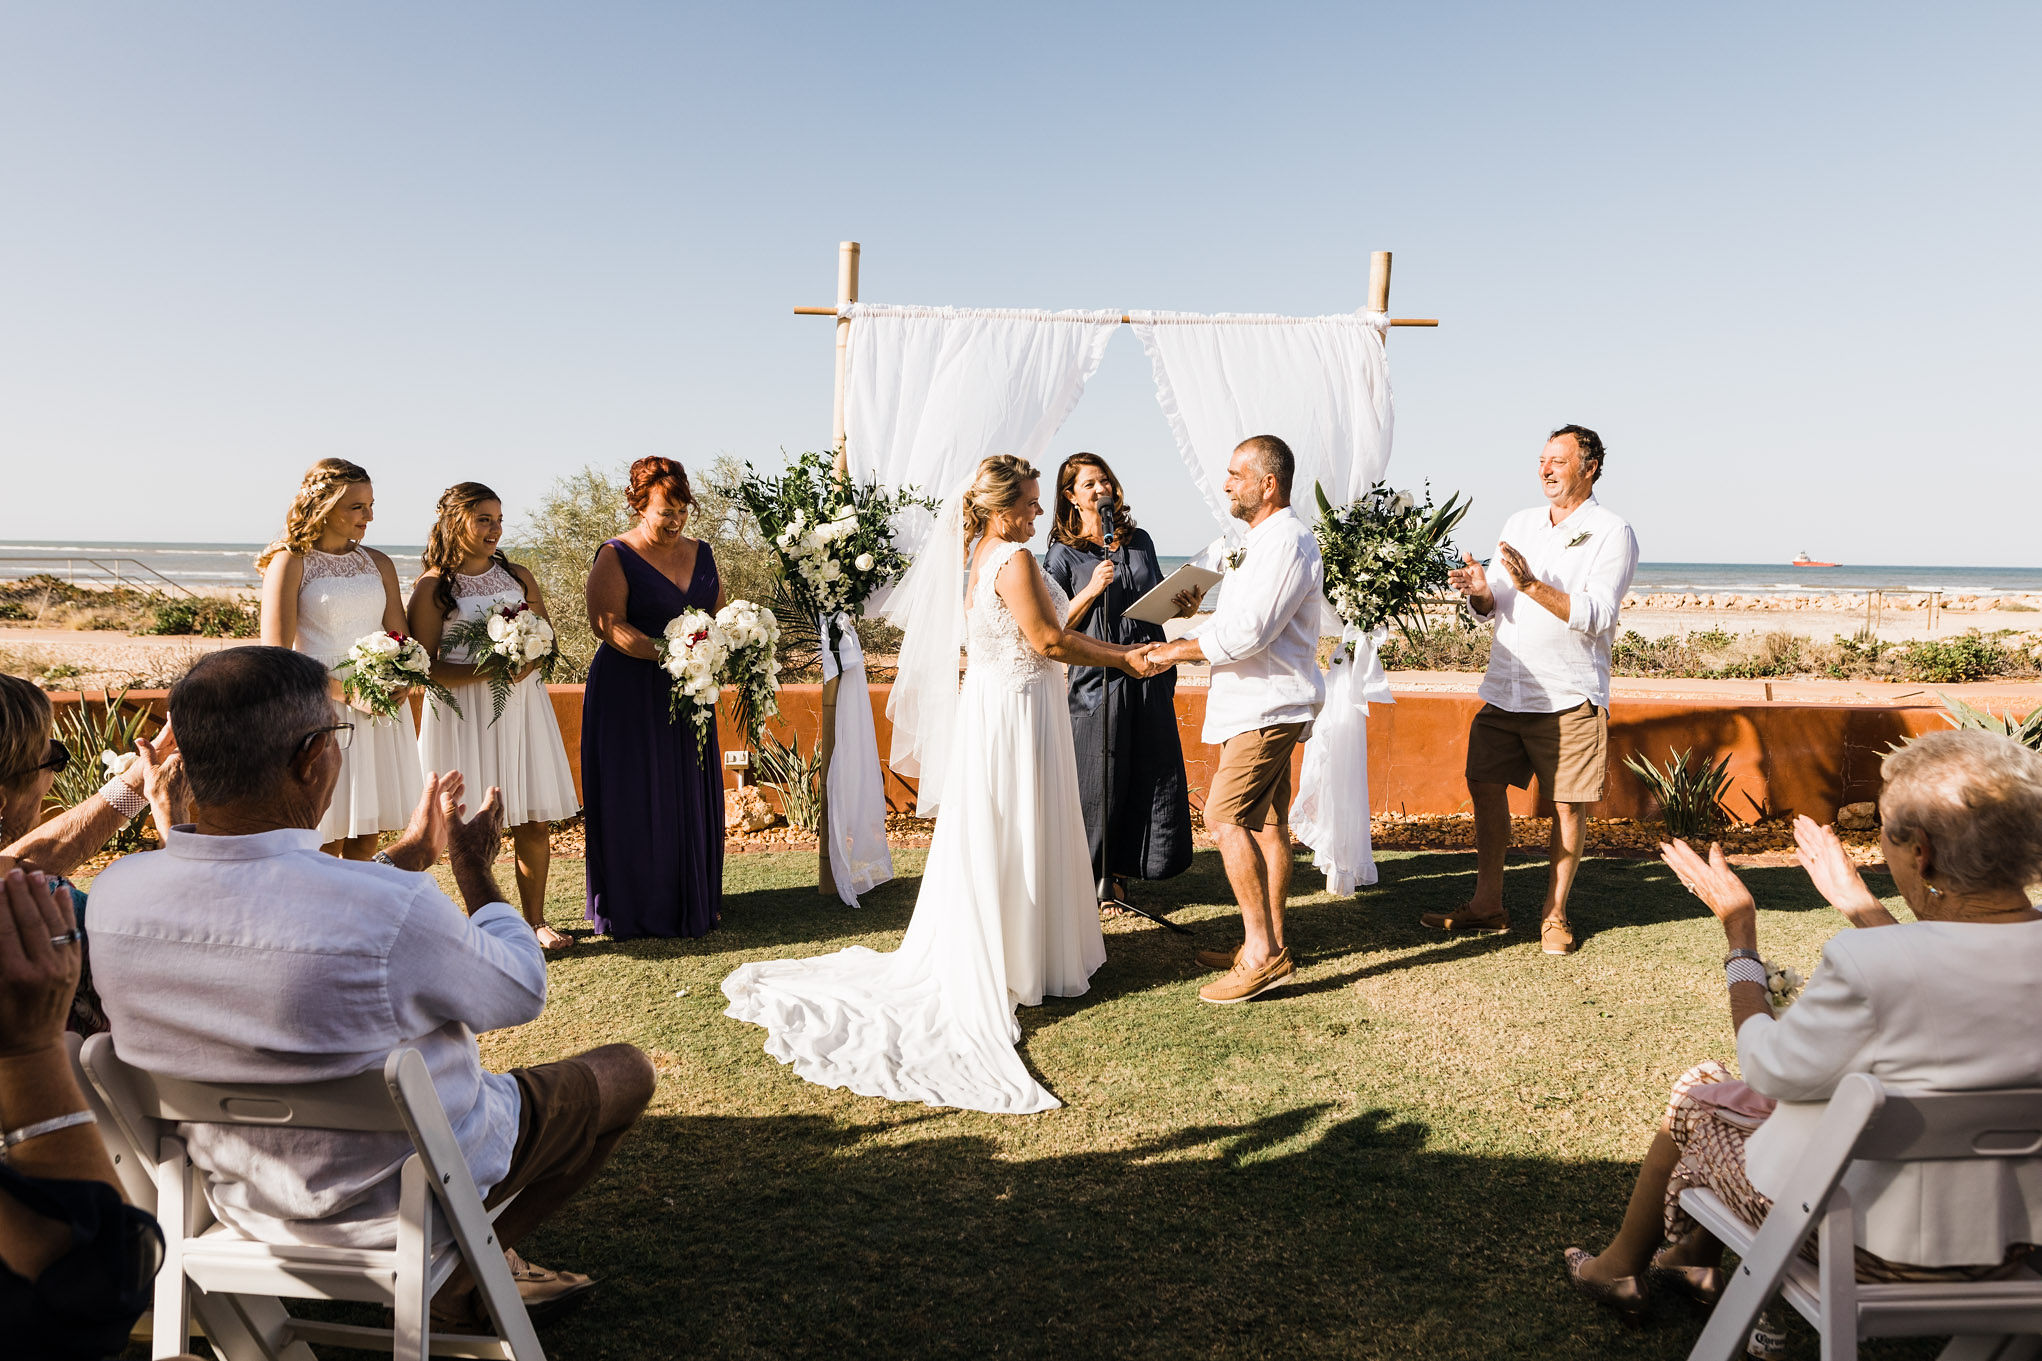 JS&G-elope-to-ningaloo-wedding-bluemedia-mantaraysresort-4.jpg